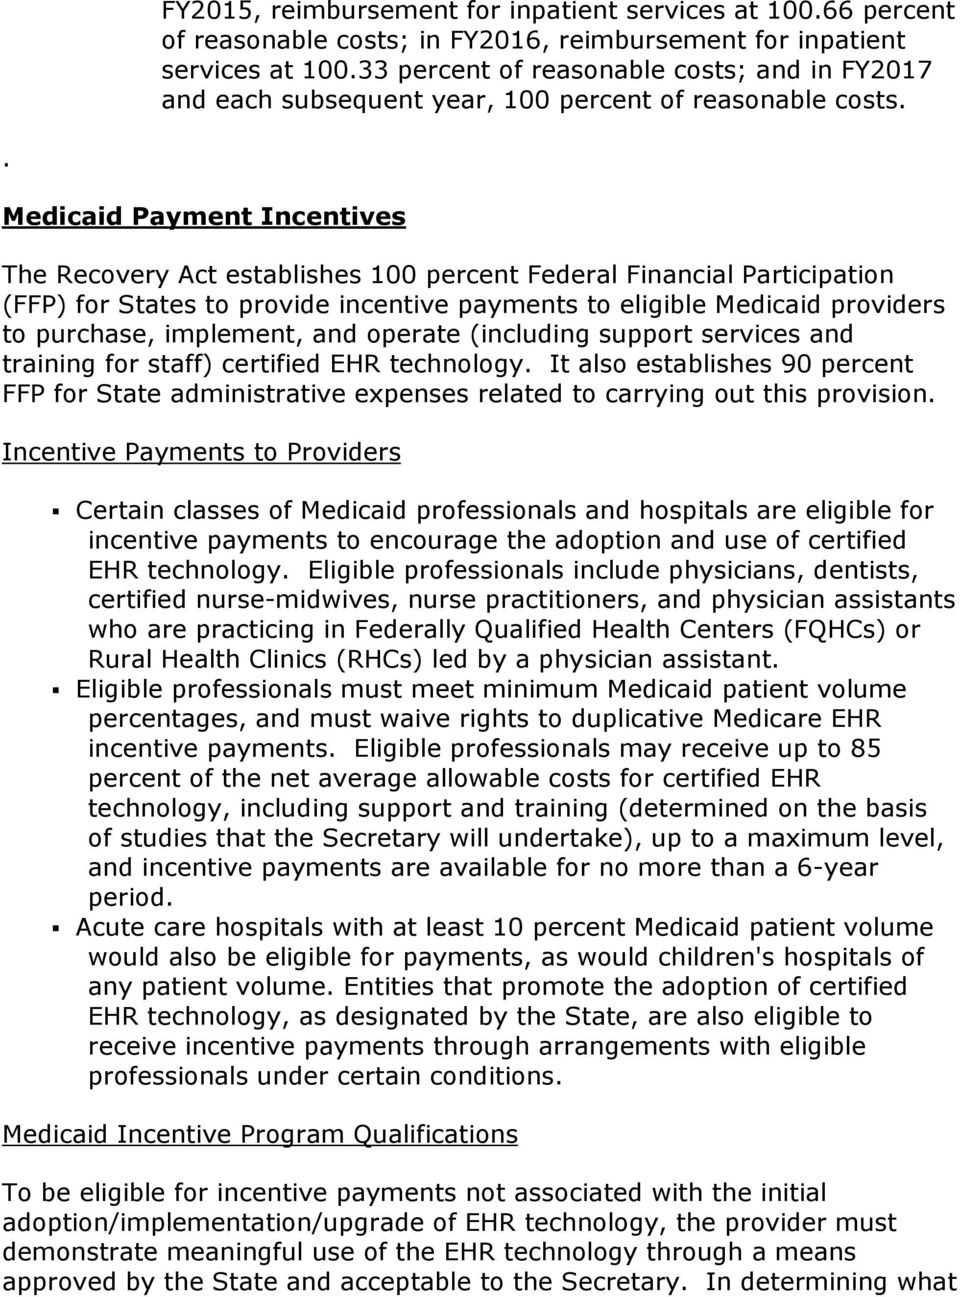 . Medicaid Payment Incentives The Recovery Act establishes 100 percent Federal Financial Participation (FFP) for States to provide incentive payments to eligible Medicaid providers to purchase,